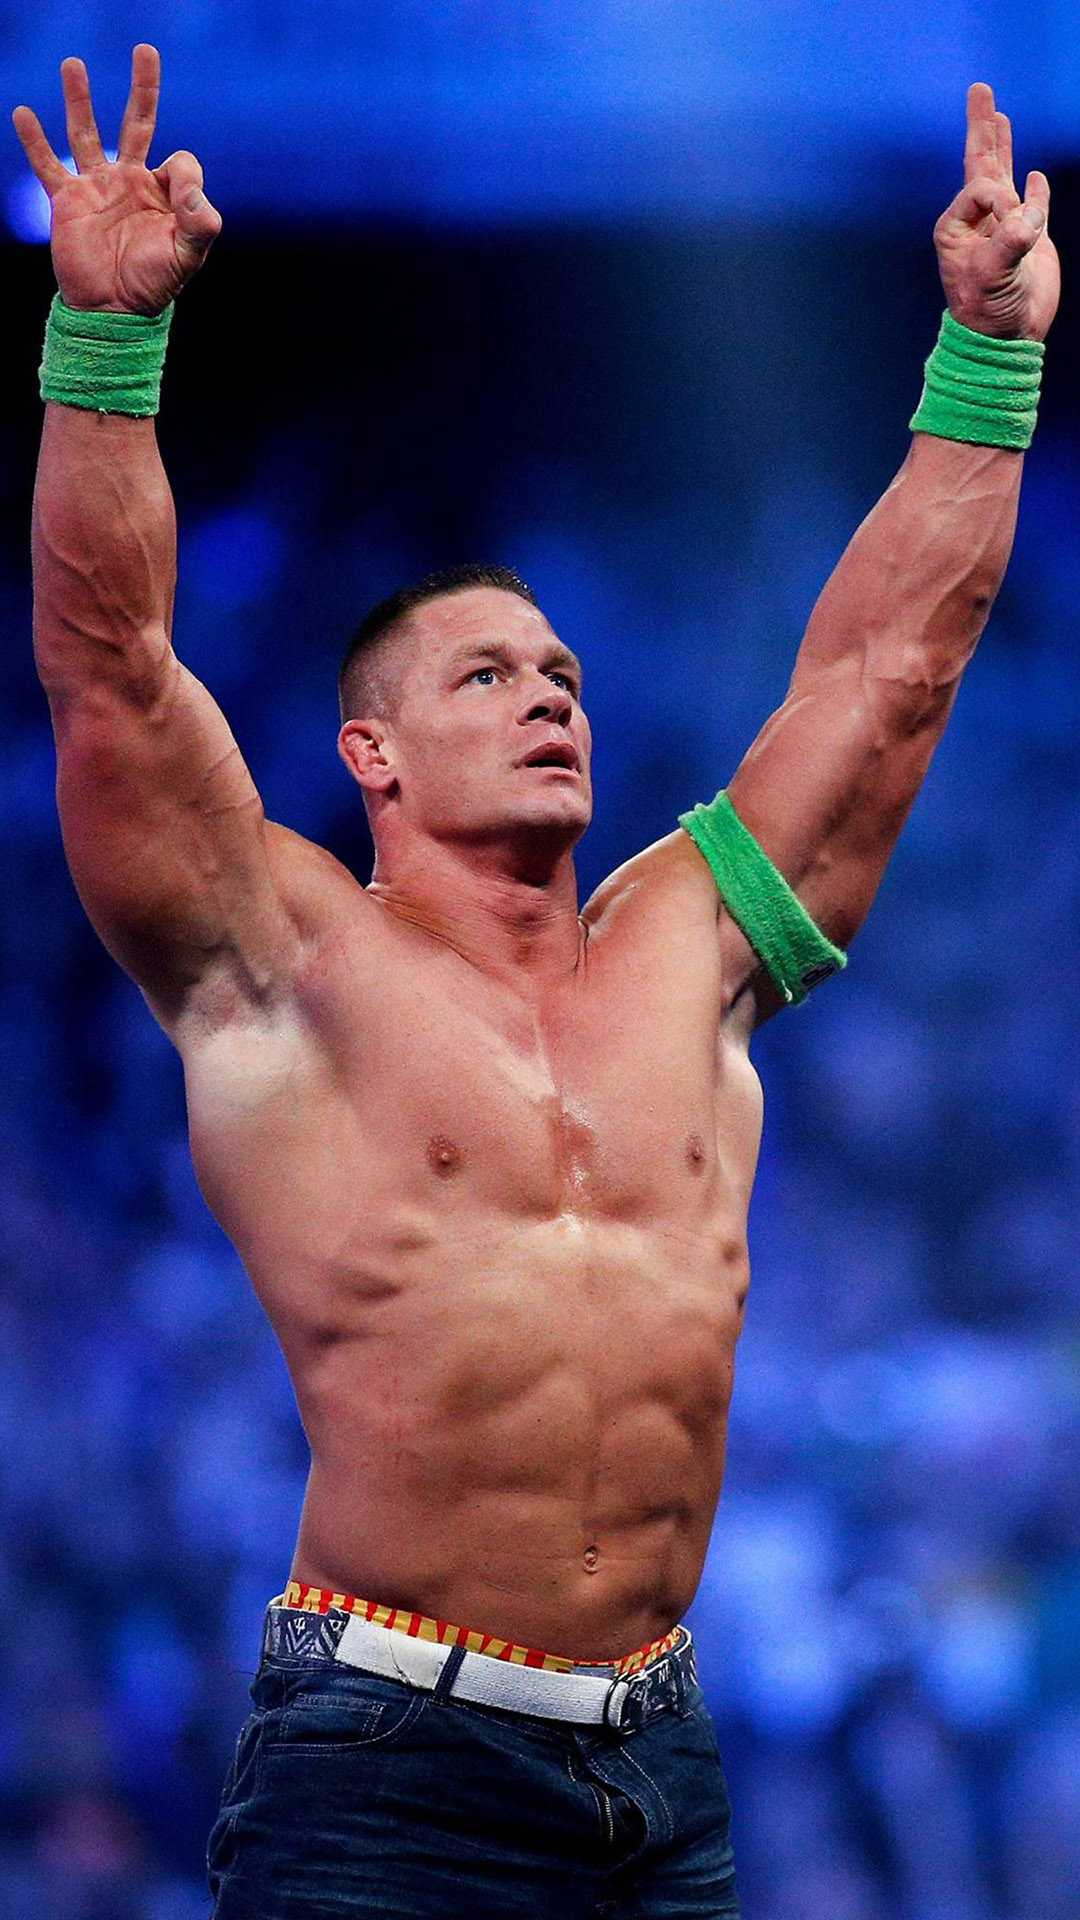 John Cena Phone number, Email Id, Fanmail, Instagram, Tiktok, and Contact Details